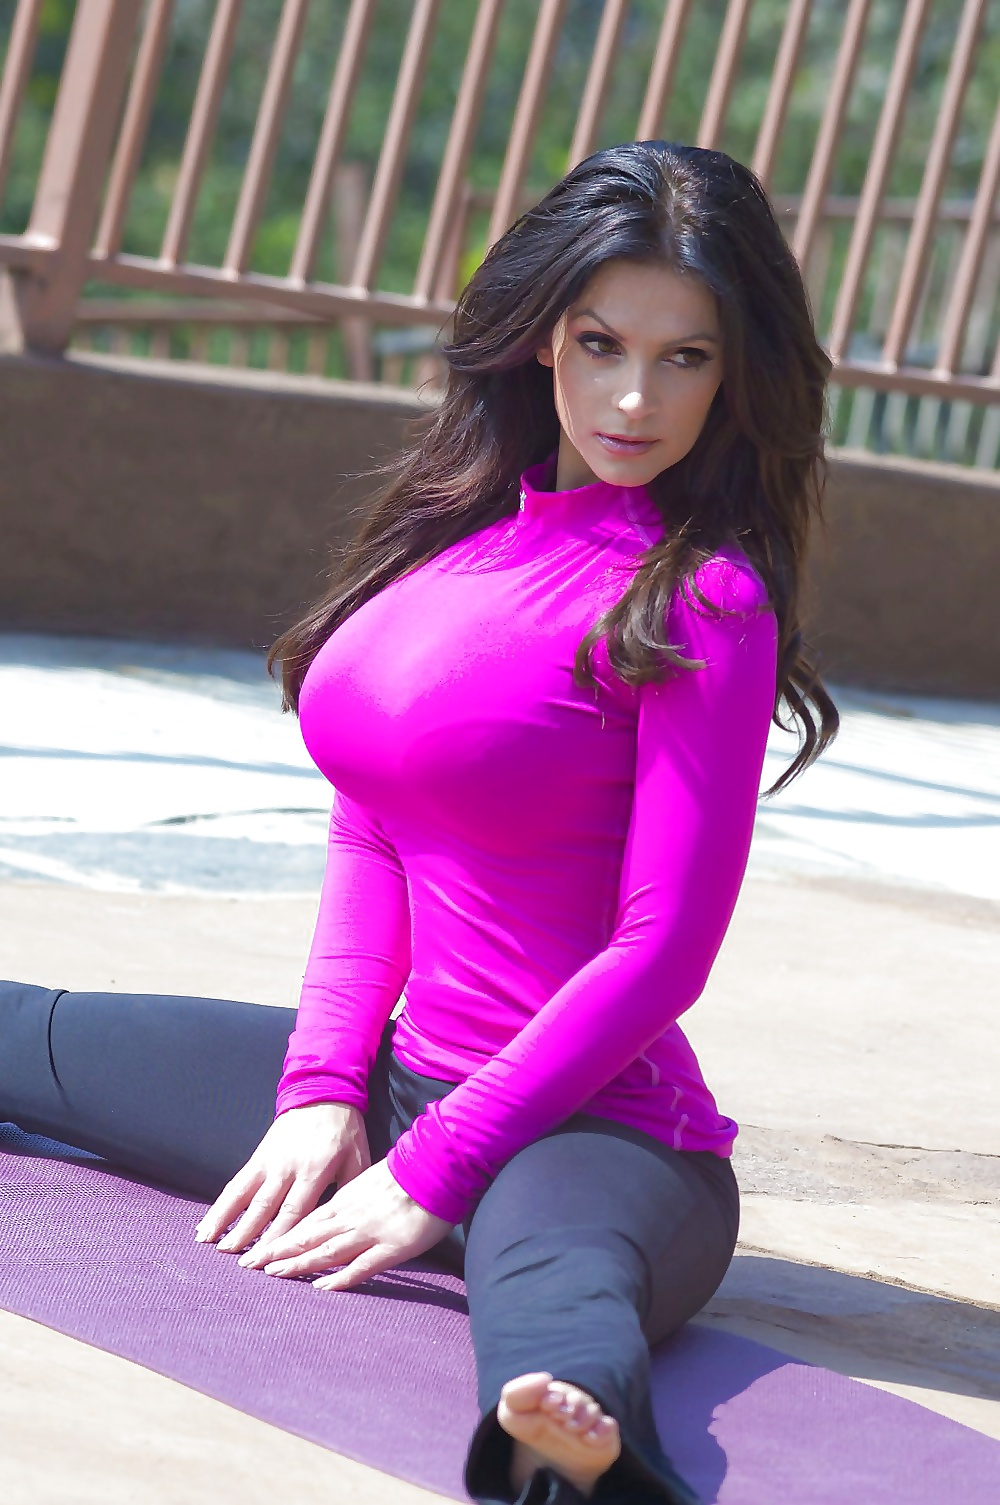 Tits in tight clothes